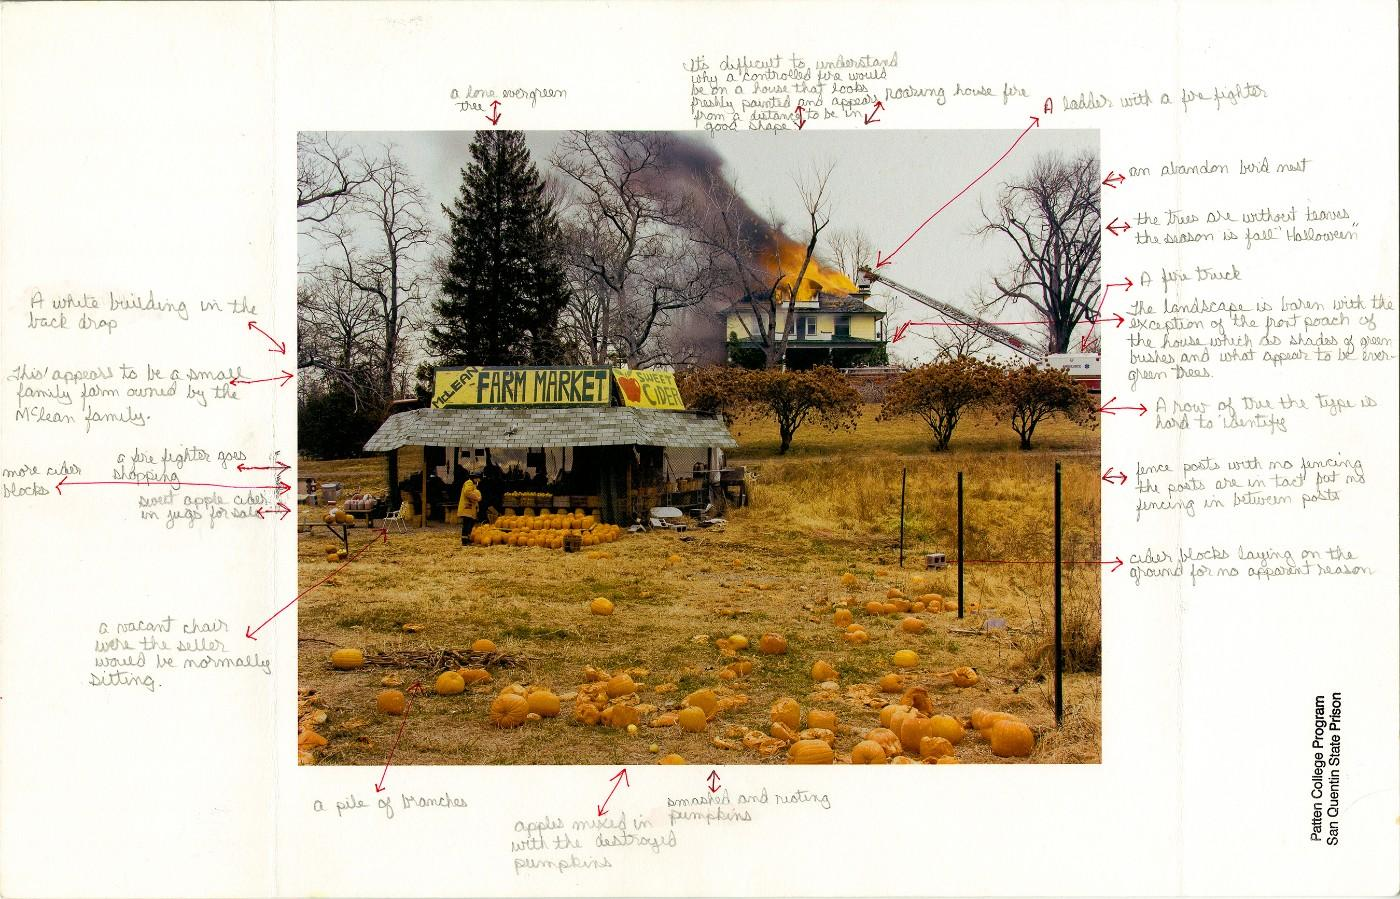 Nigel Poor and Frankie Smith. Mapping Joel Sternfeld, side A, 2011/12.